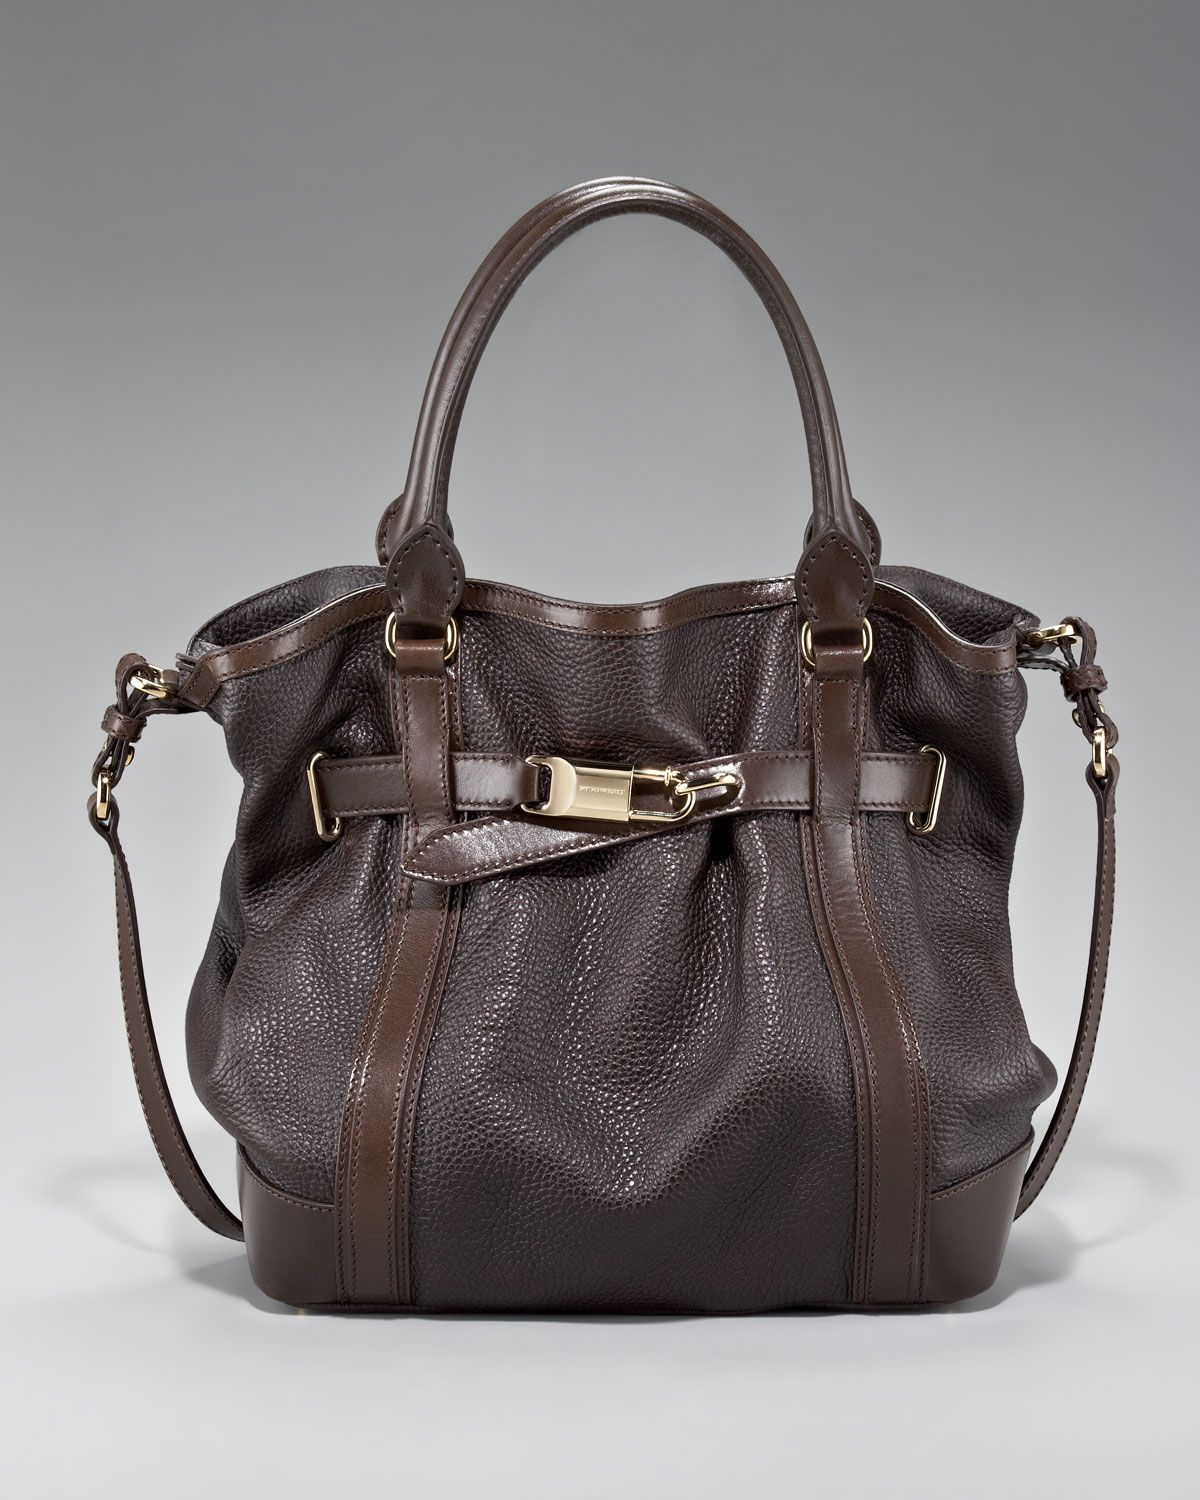 b3ba9cad84a Pin by tangwen tangwen on test   Pinterest   Burberry, Handbags and Bags